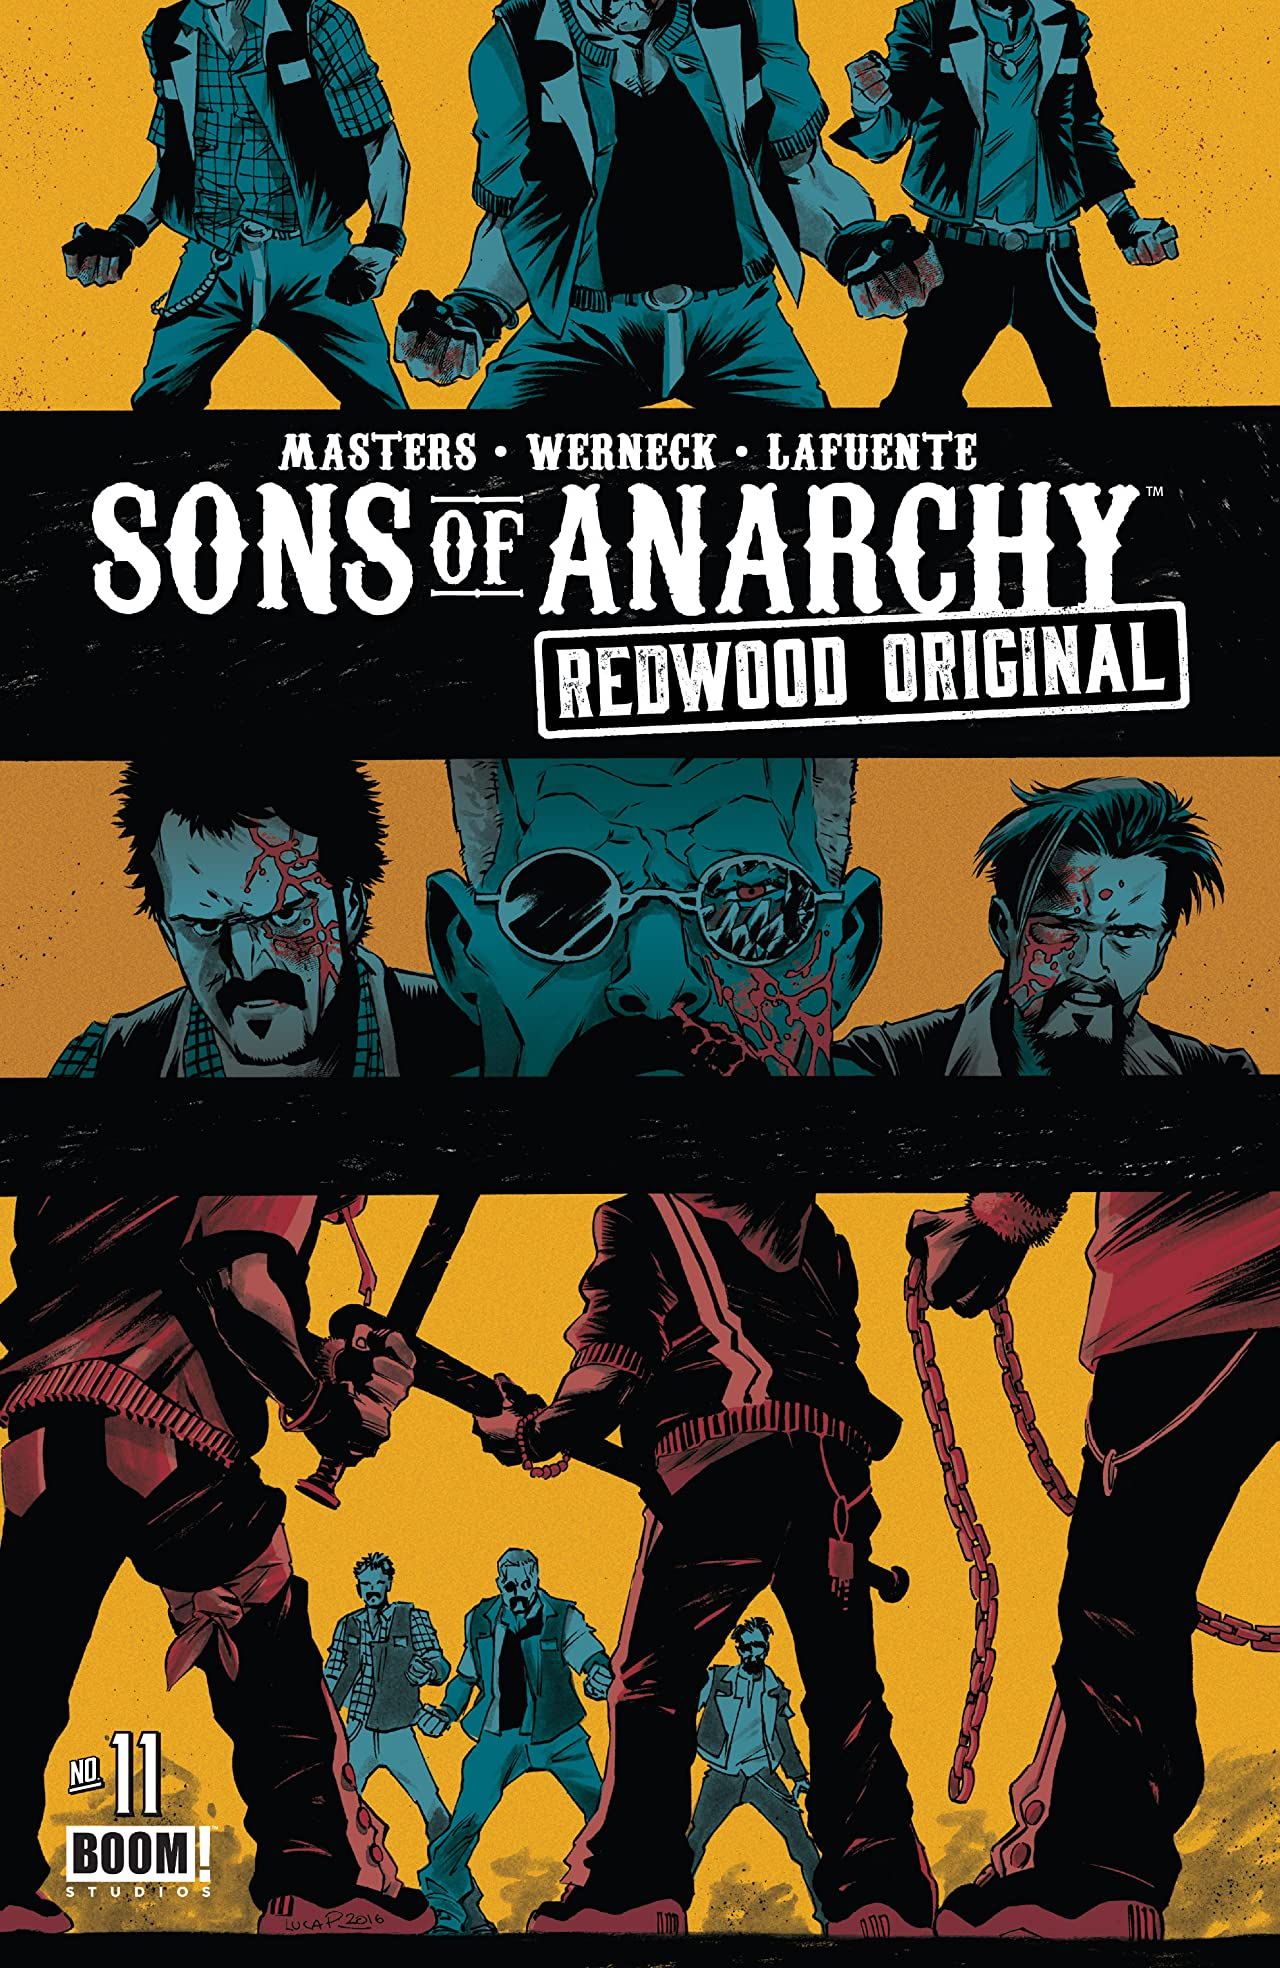 Sons of Anarchy: Redwood Original #11